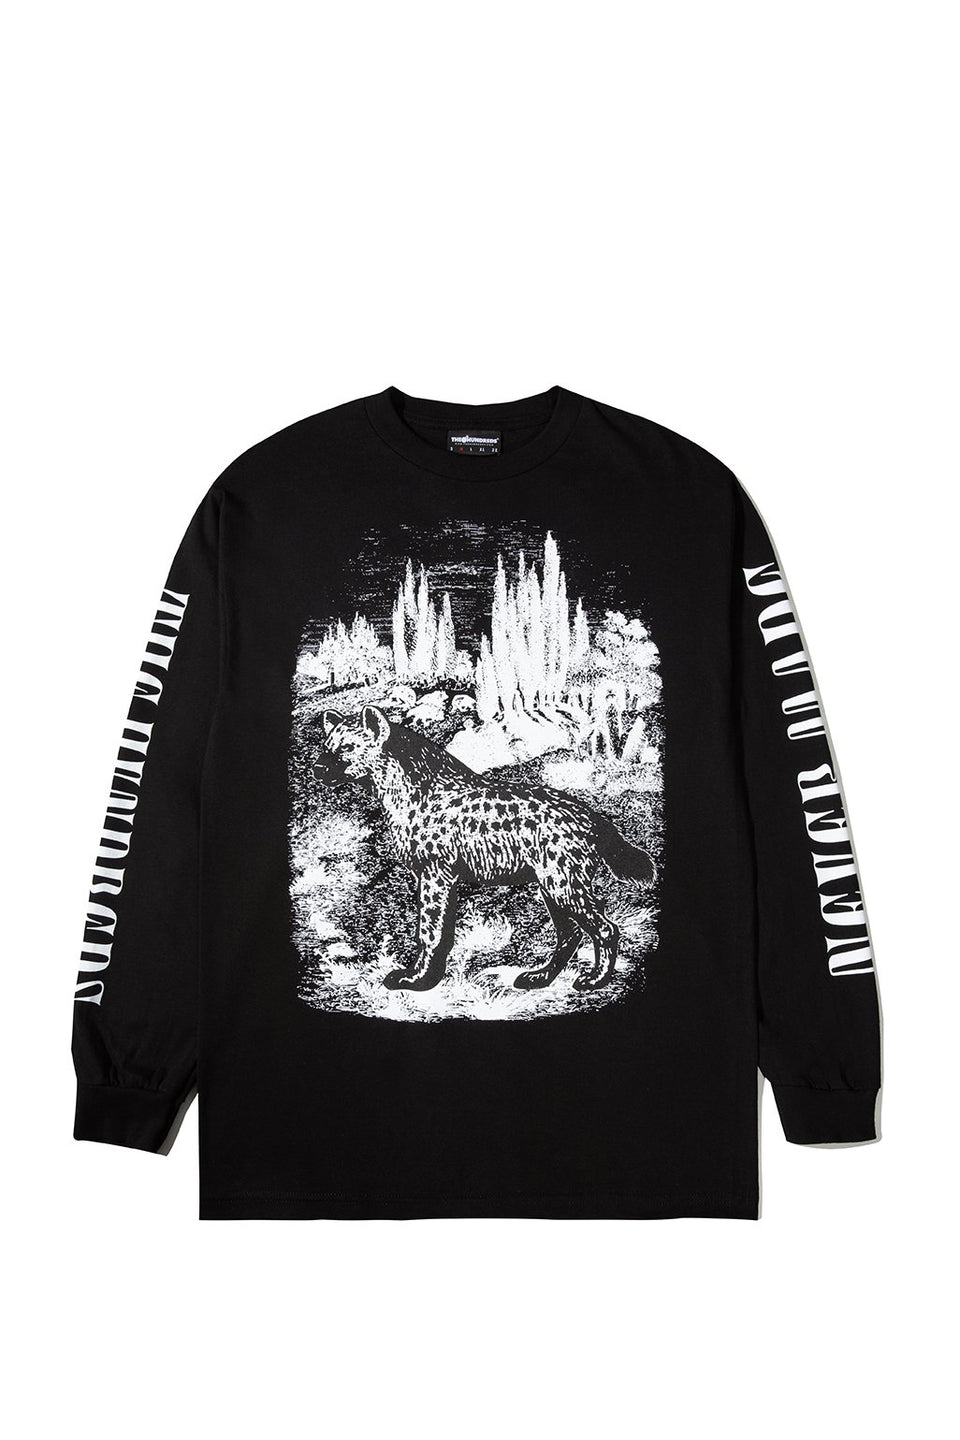 Land L/S Shirt by The Hundreds